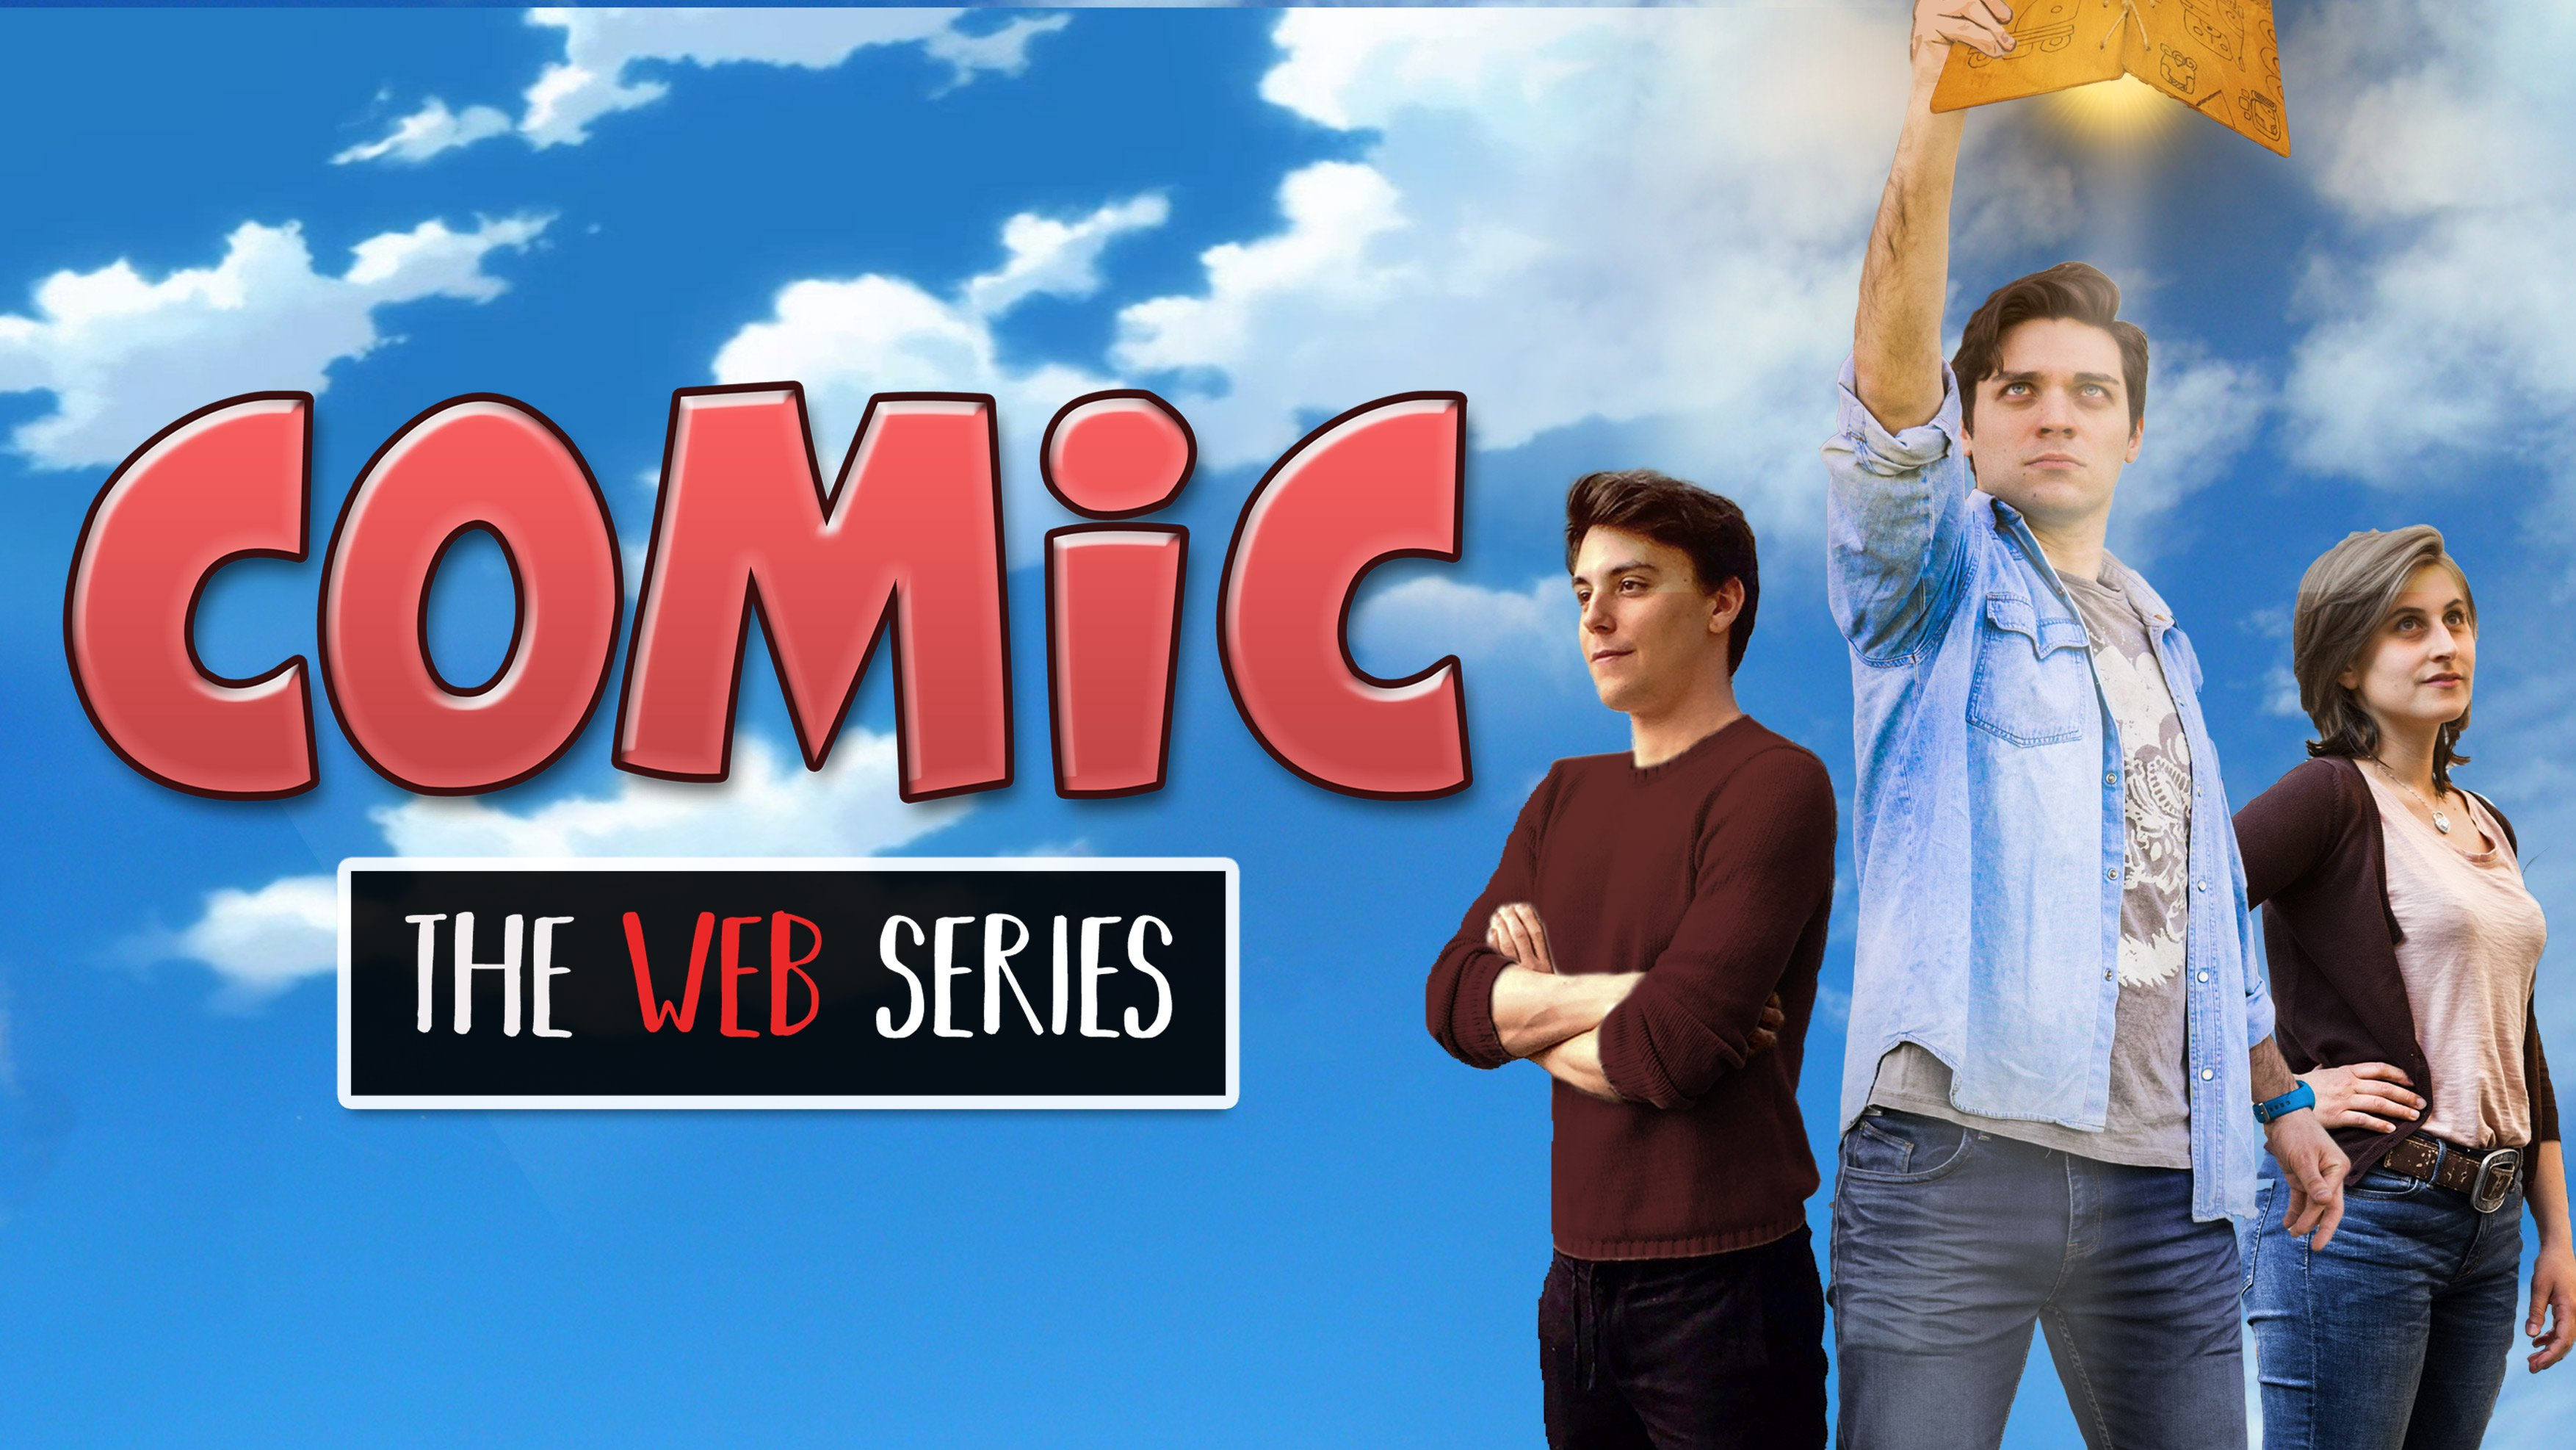 Roma Web Fest - COMIC – The Web Series